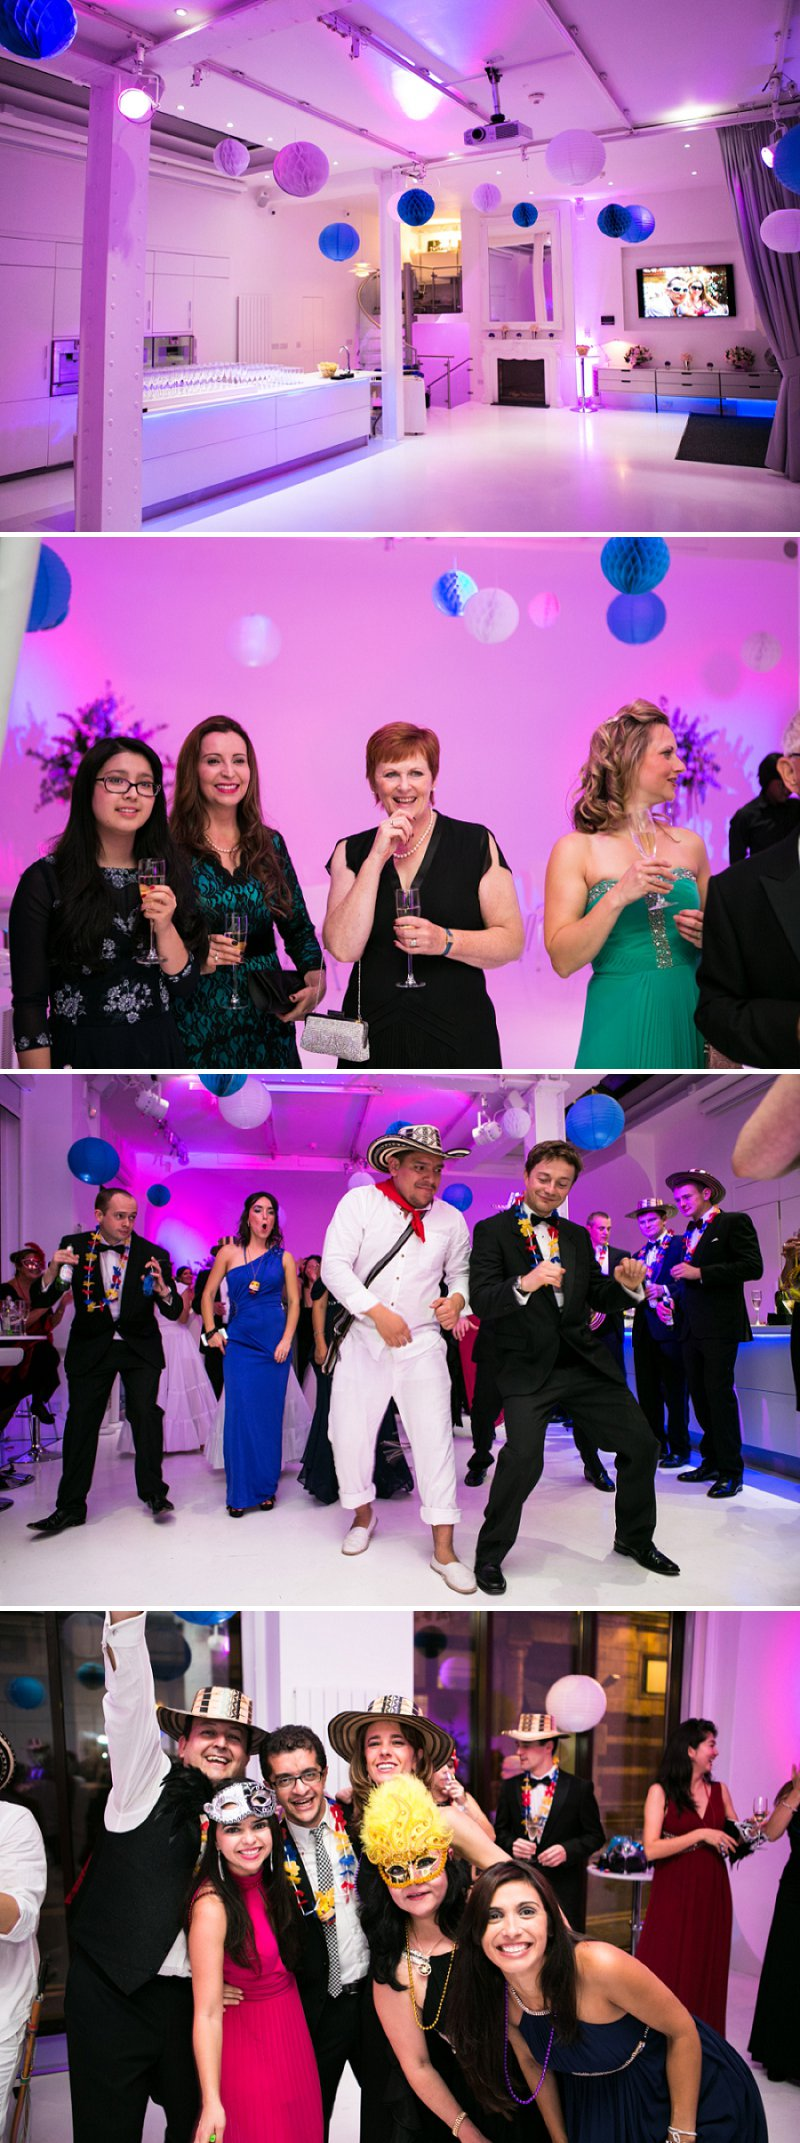 Elegant Wedding At The Connaught Hotel Mayfair With Bride In Derby By Pronovias With Jimmy Choo Sandals And Groom In Navy Suit By D&G With A Colombian Themed Evening Party At Icetank Covent Garden With Images From Anneli Marinovich 8